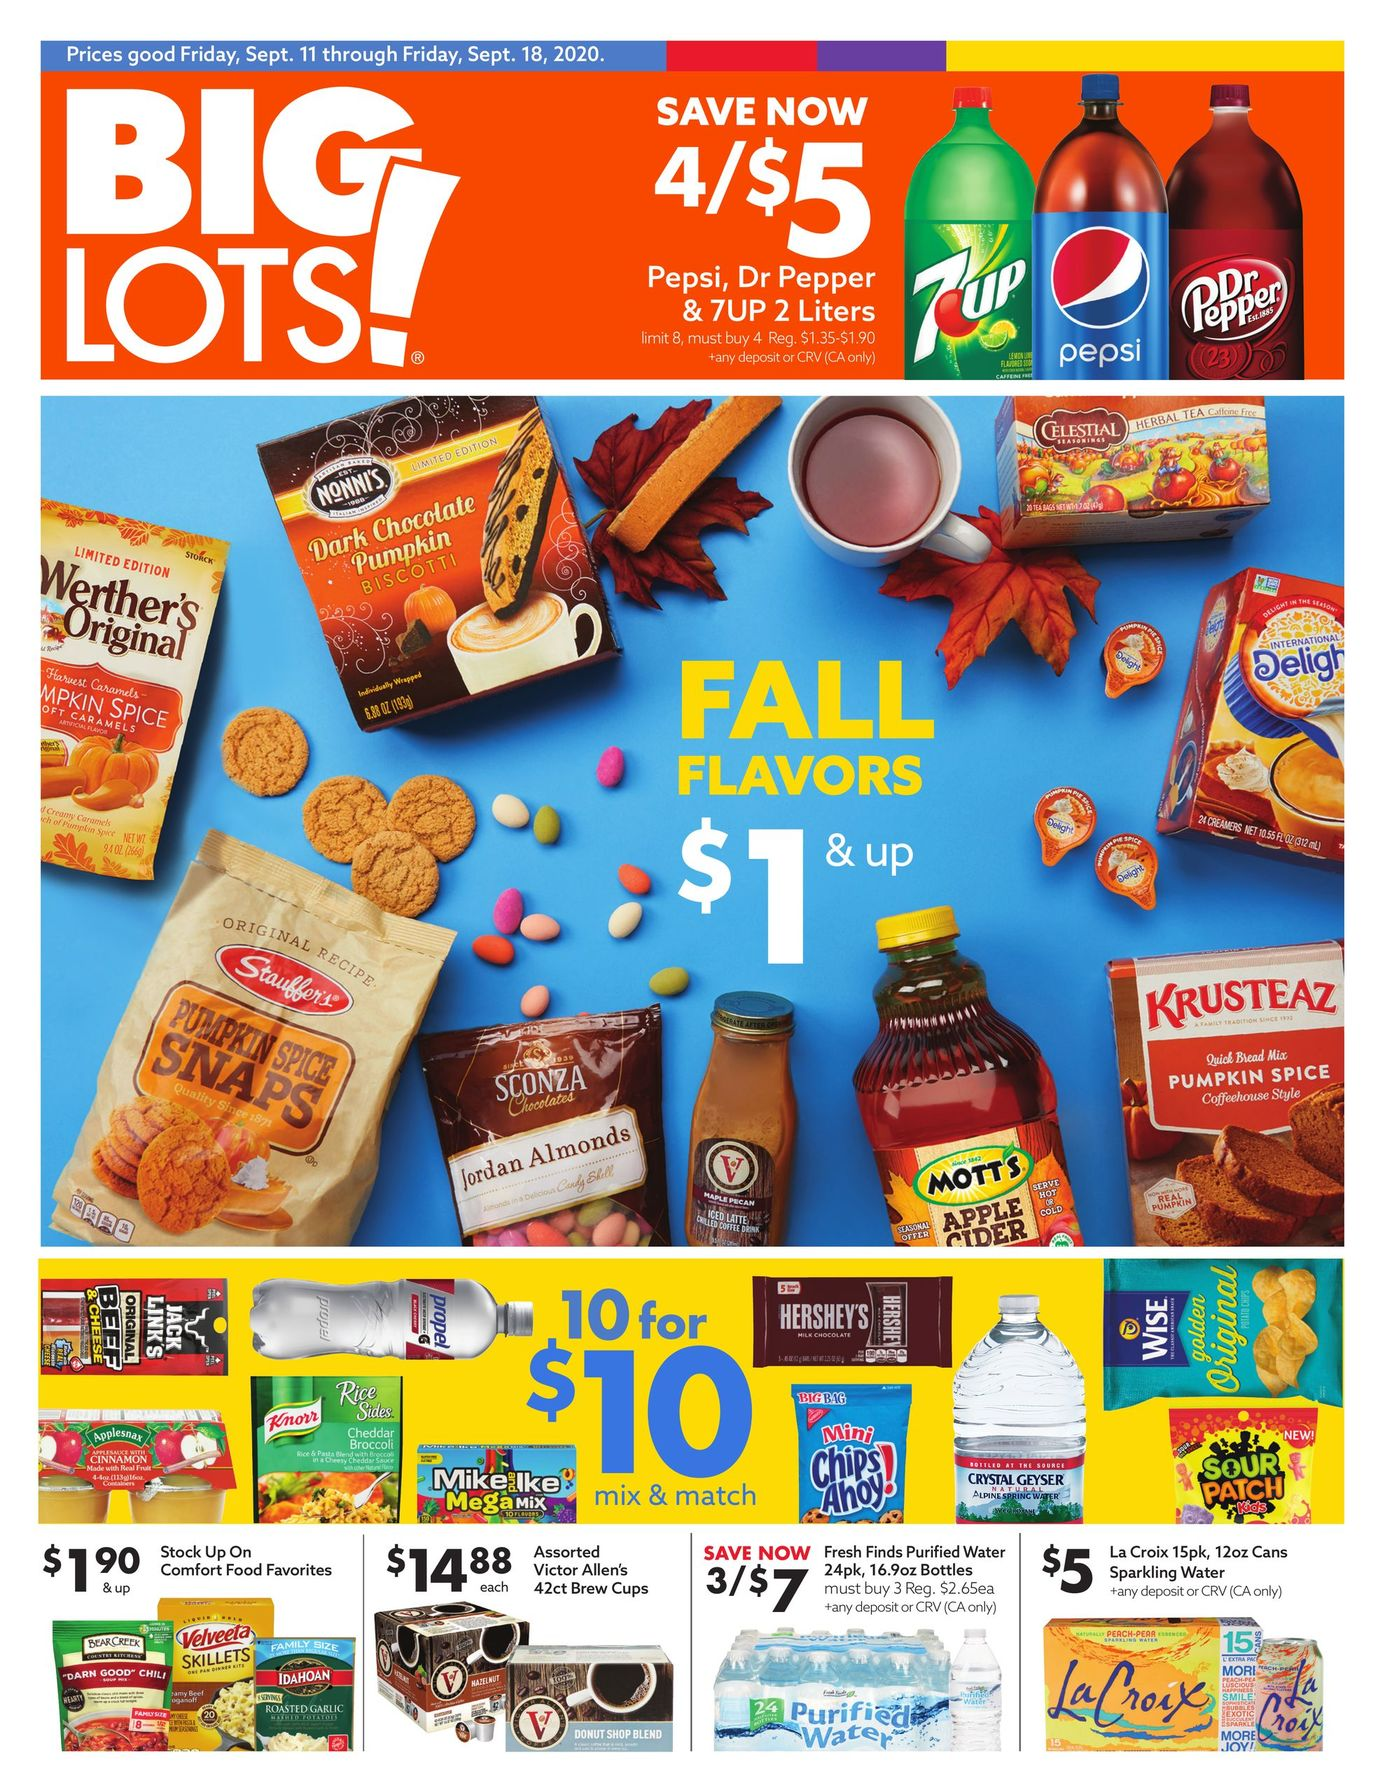 Big Lots Weekly Ad September 11 - September 18, 2020. Fall Flavors!